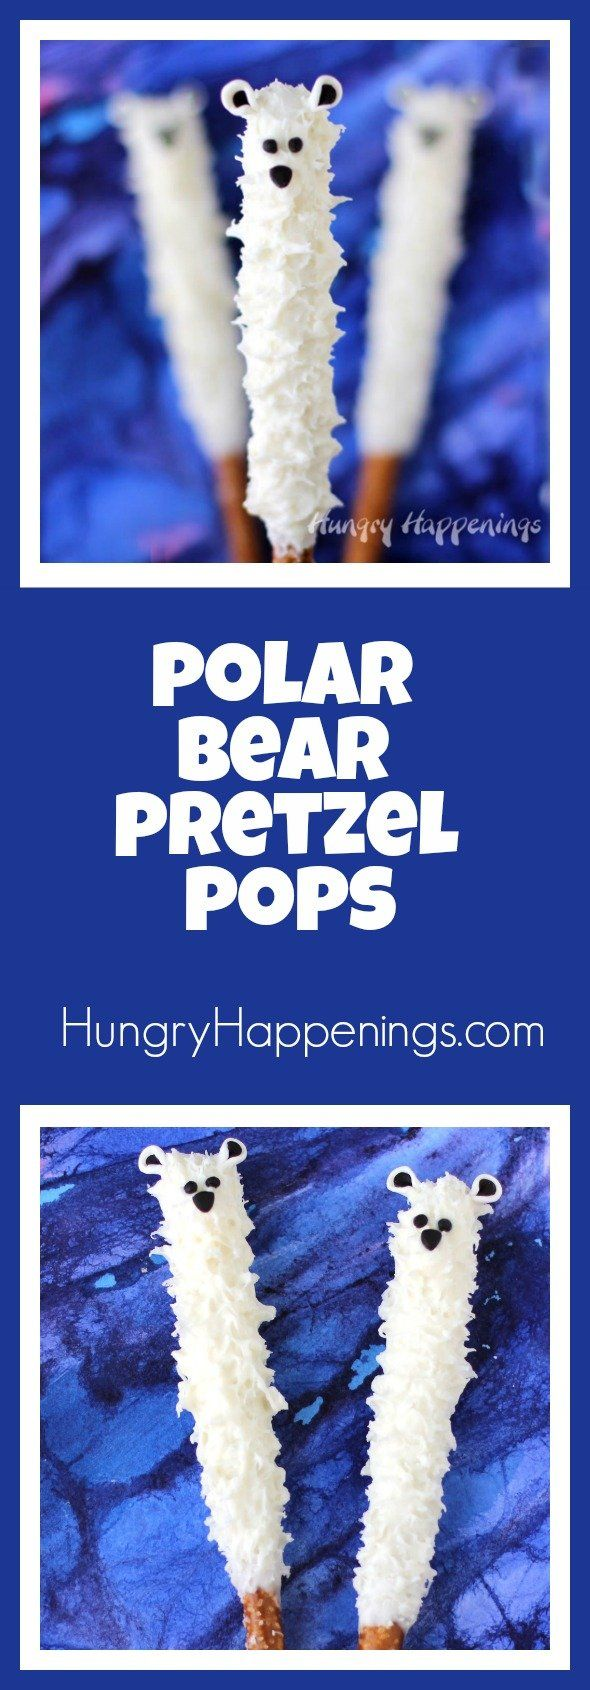 109 Best Polar Party Images On Pinterest Craft Frozen Party And